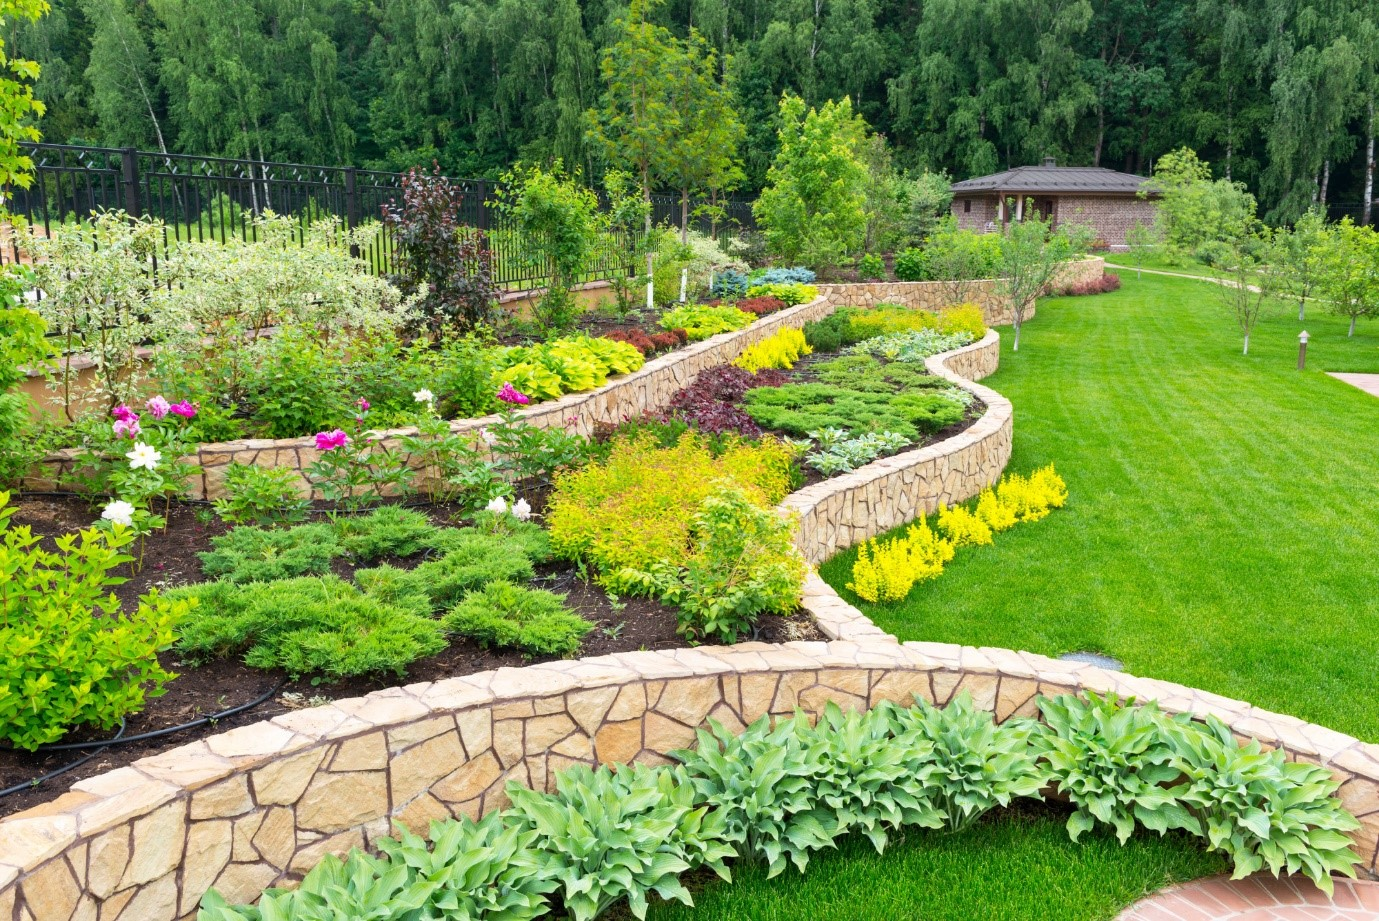 image - 7 Expert Tips for DIY Landscaping Projects That Will Make an Impact